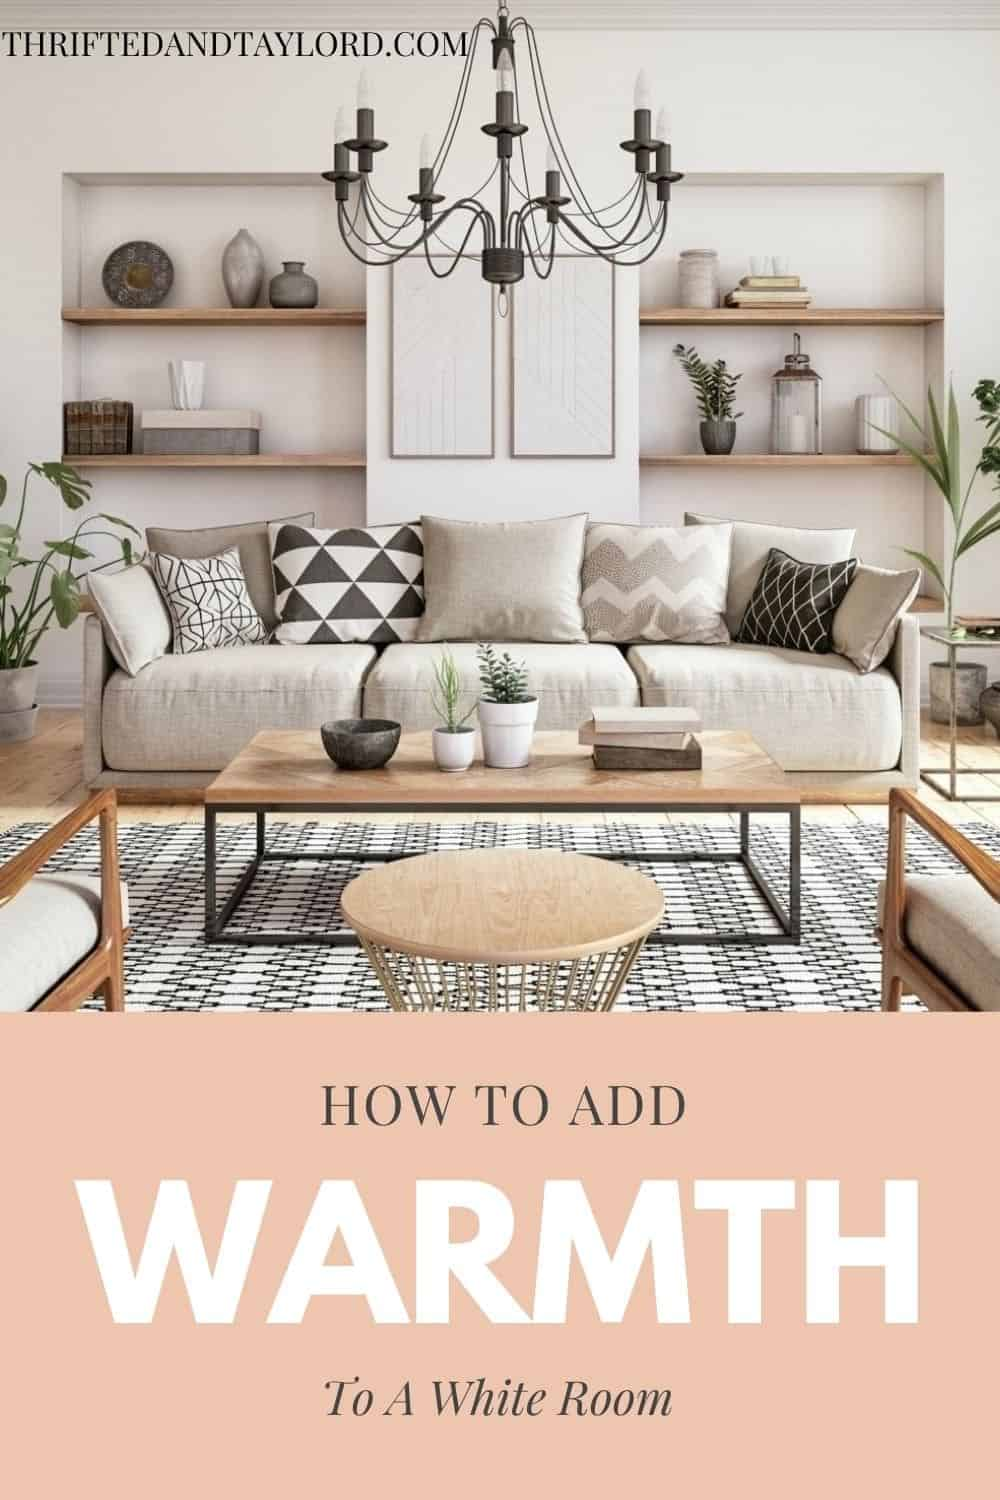 How to Add Warmth to A White Room and Make Your Home Cozy